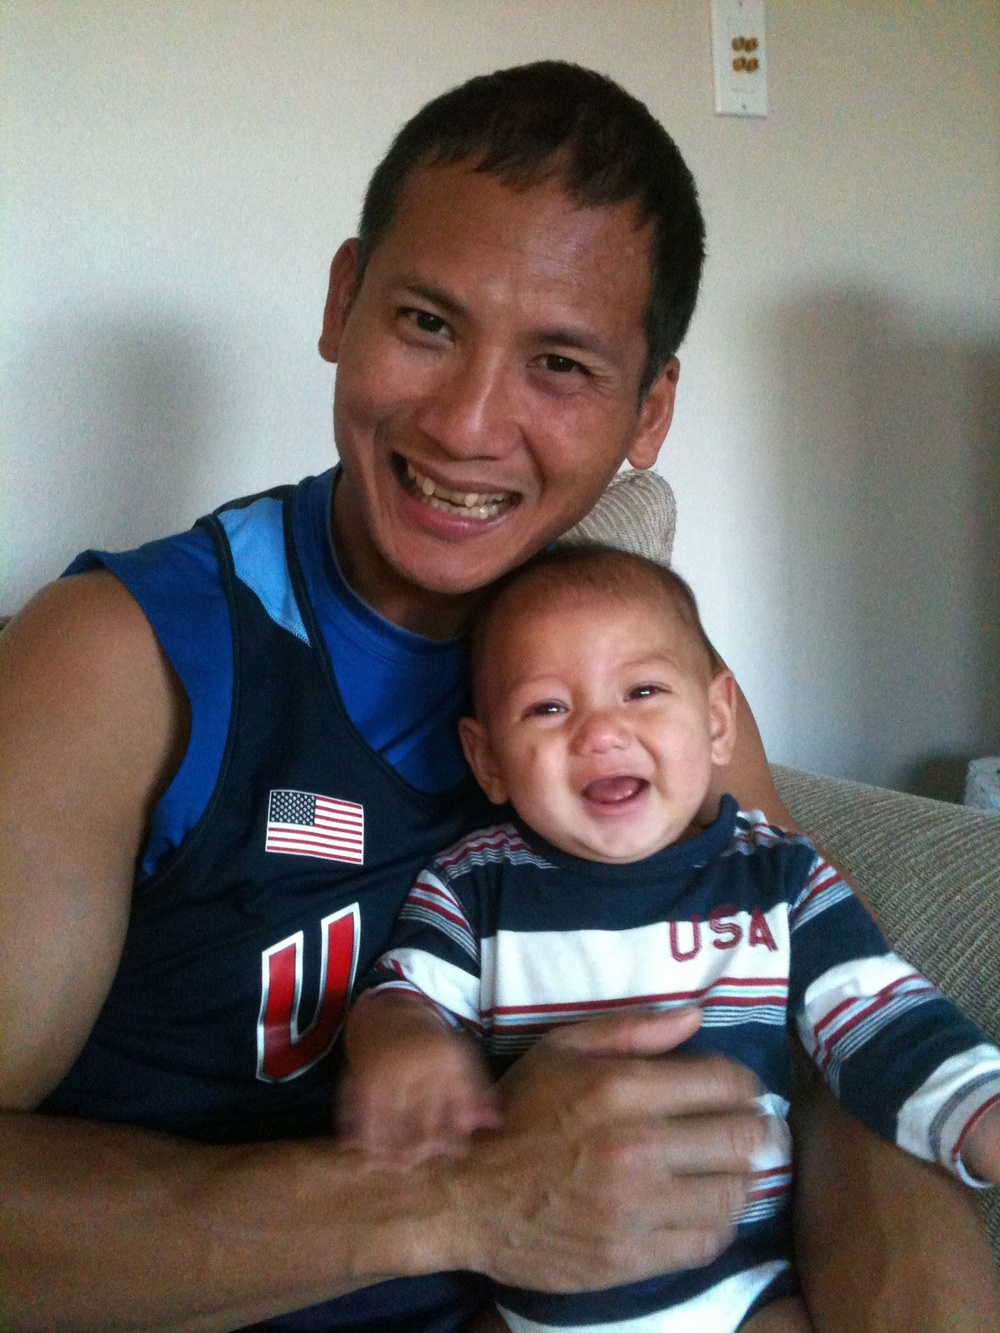 With our infant son in July 2011